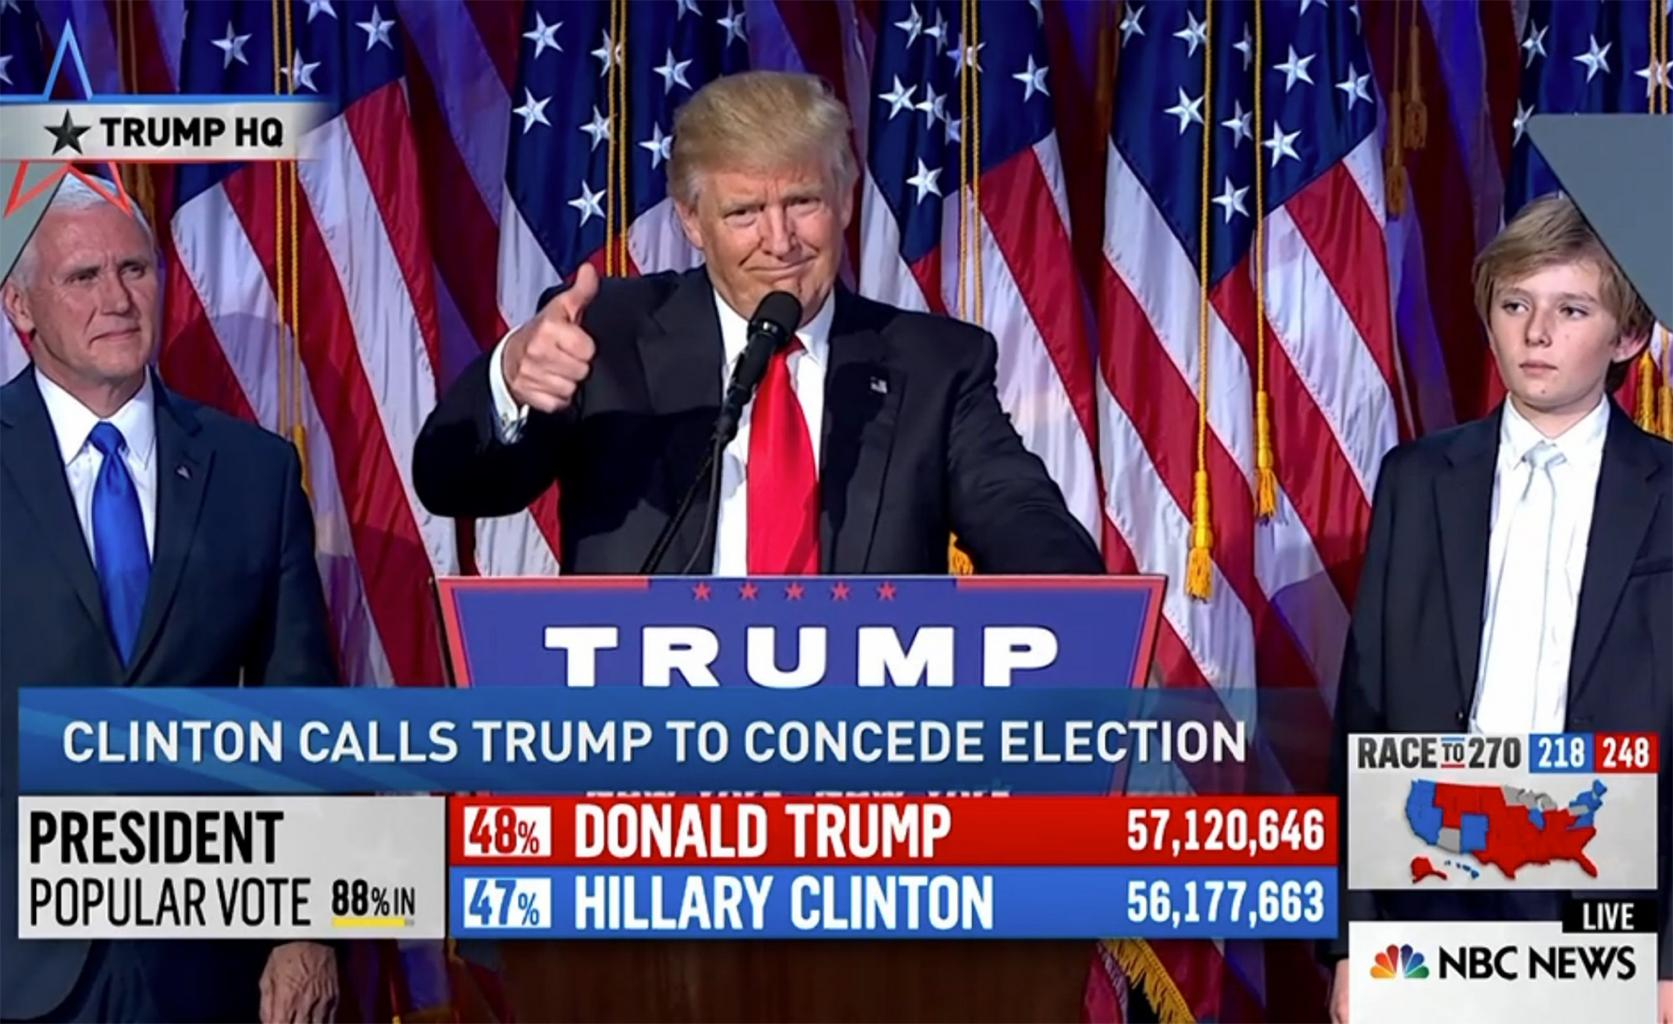 He  's Hired! Donald Trump Is Elected 45th President of the United States in Stunning Upset